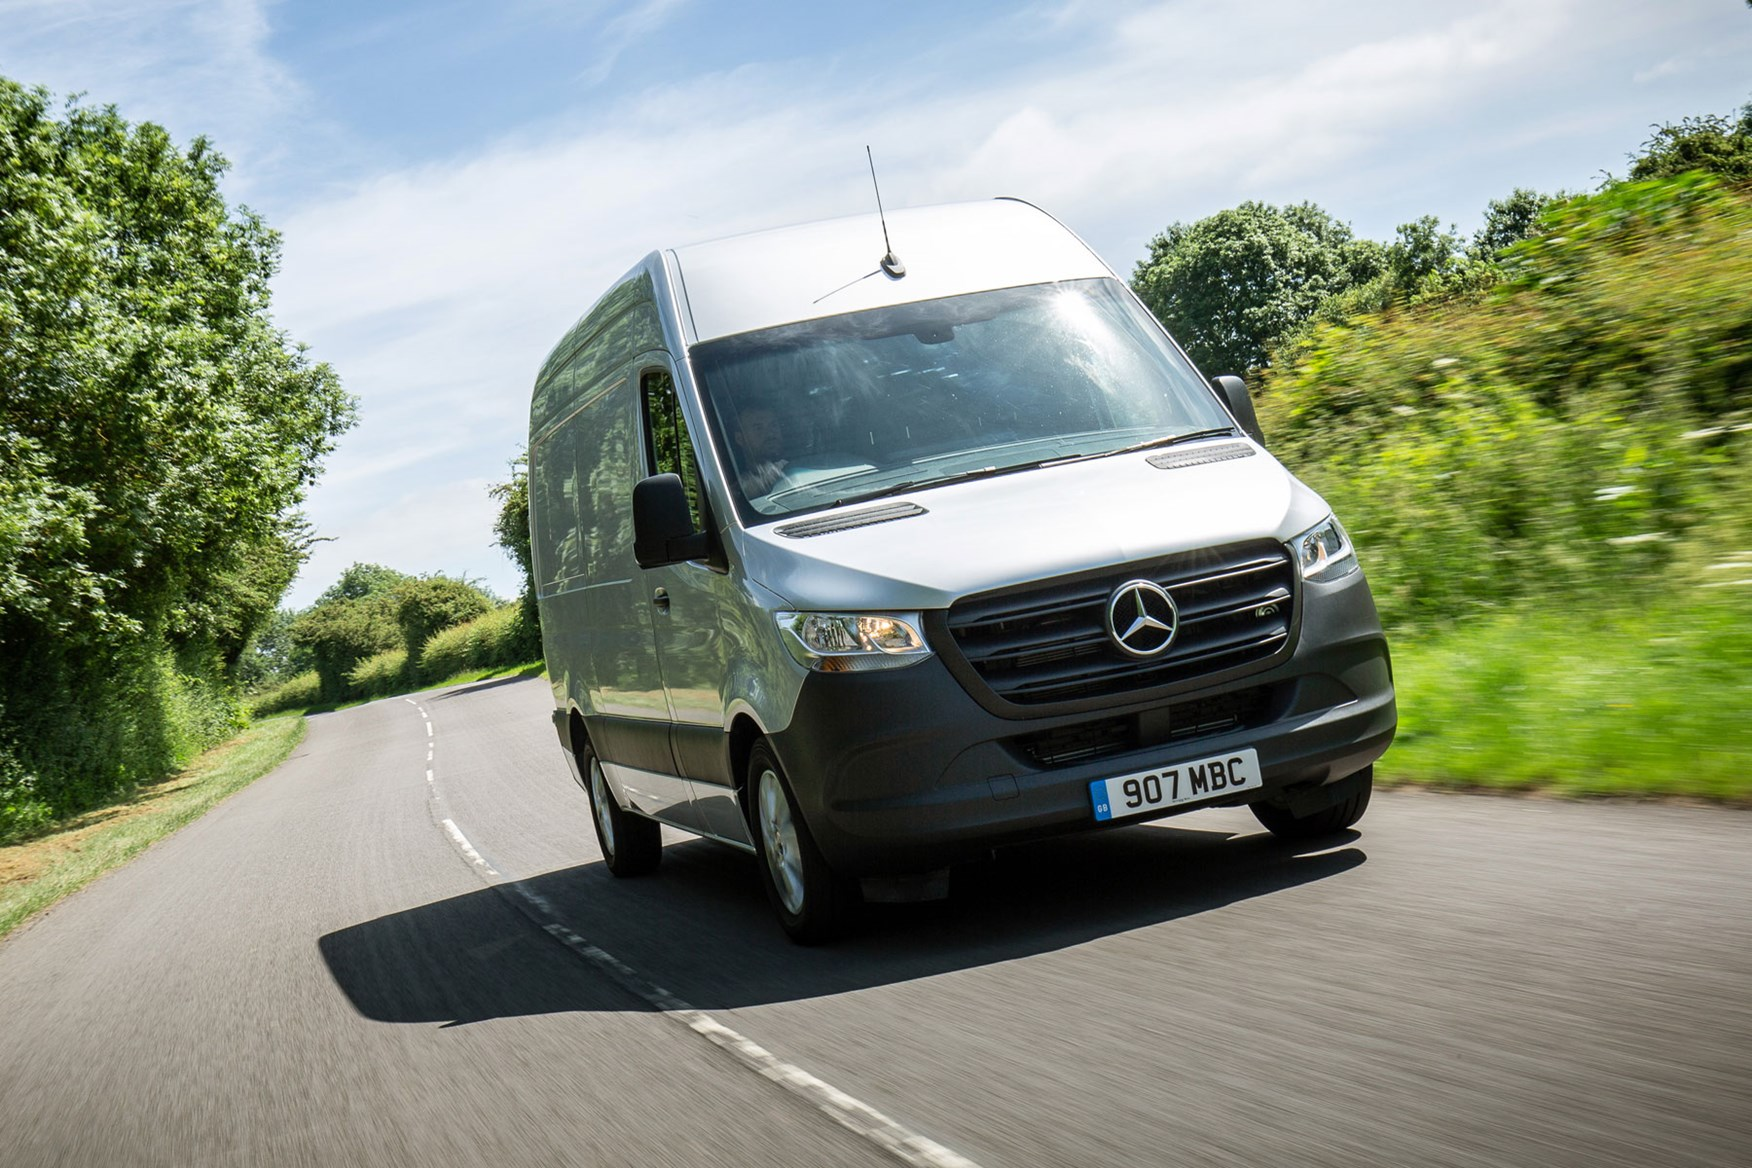 Mercedes Sprinter (2018-on), running costs, front view, silver, UK, driving on country lane